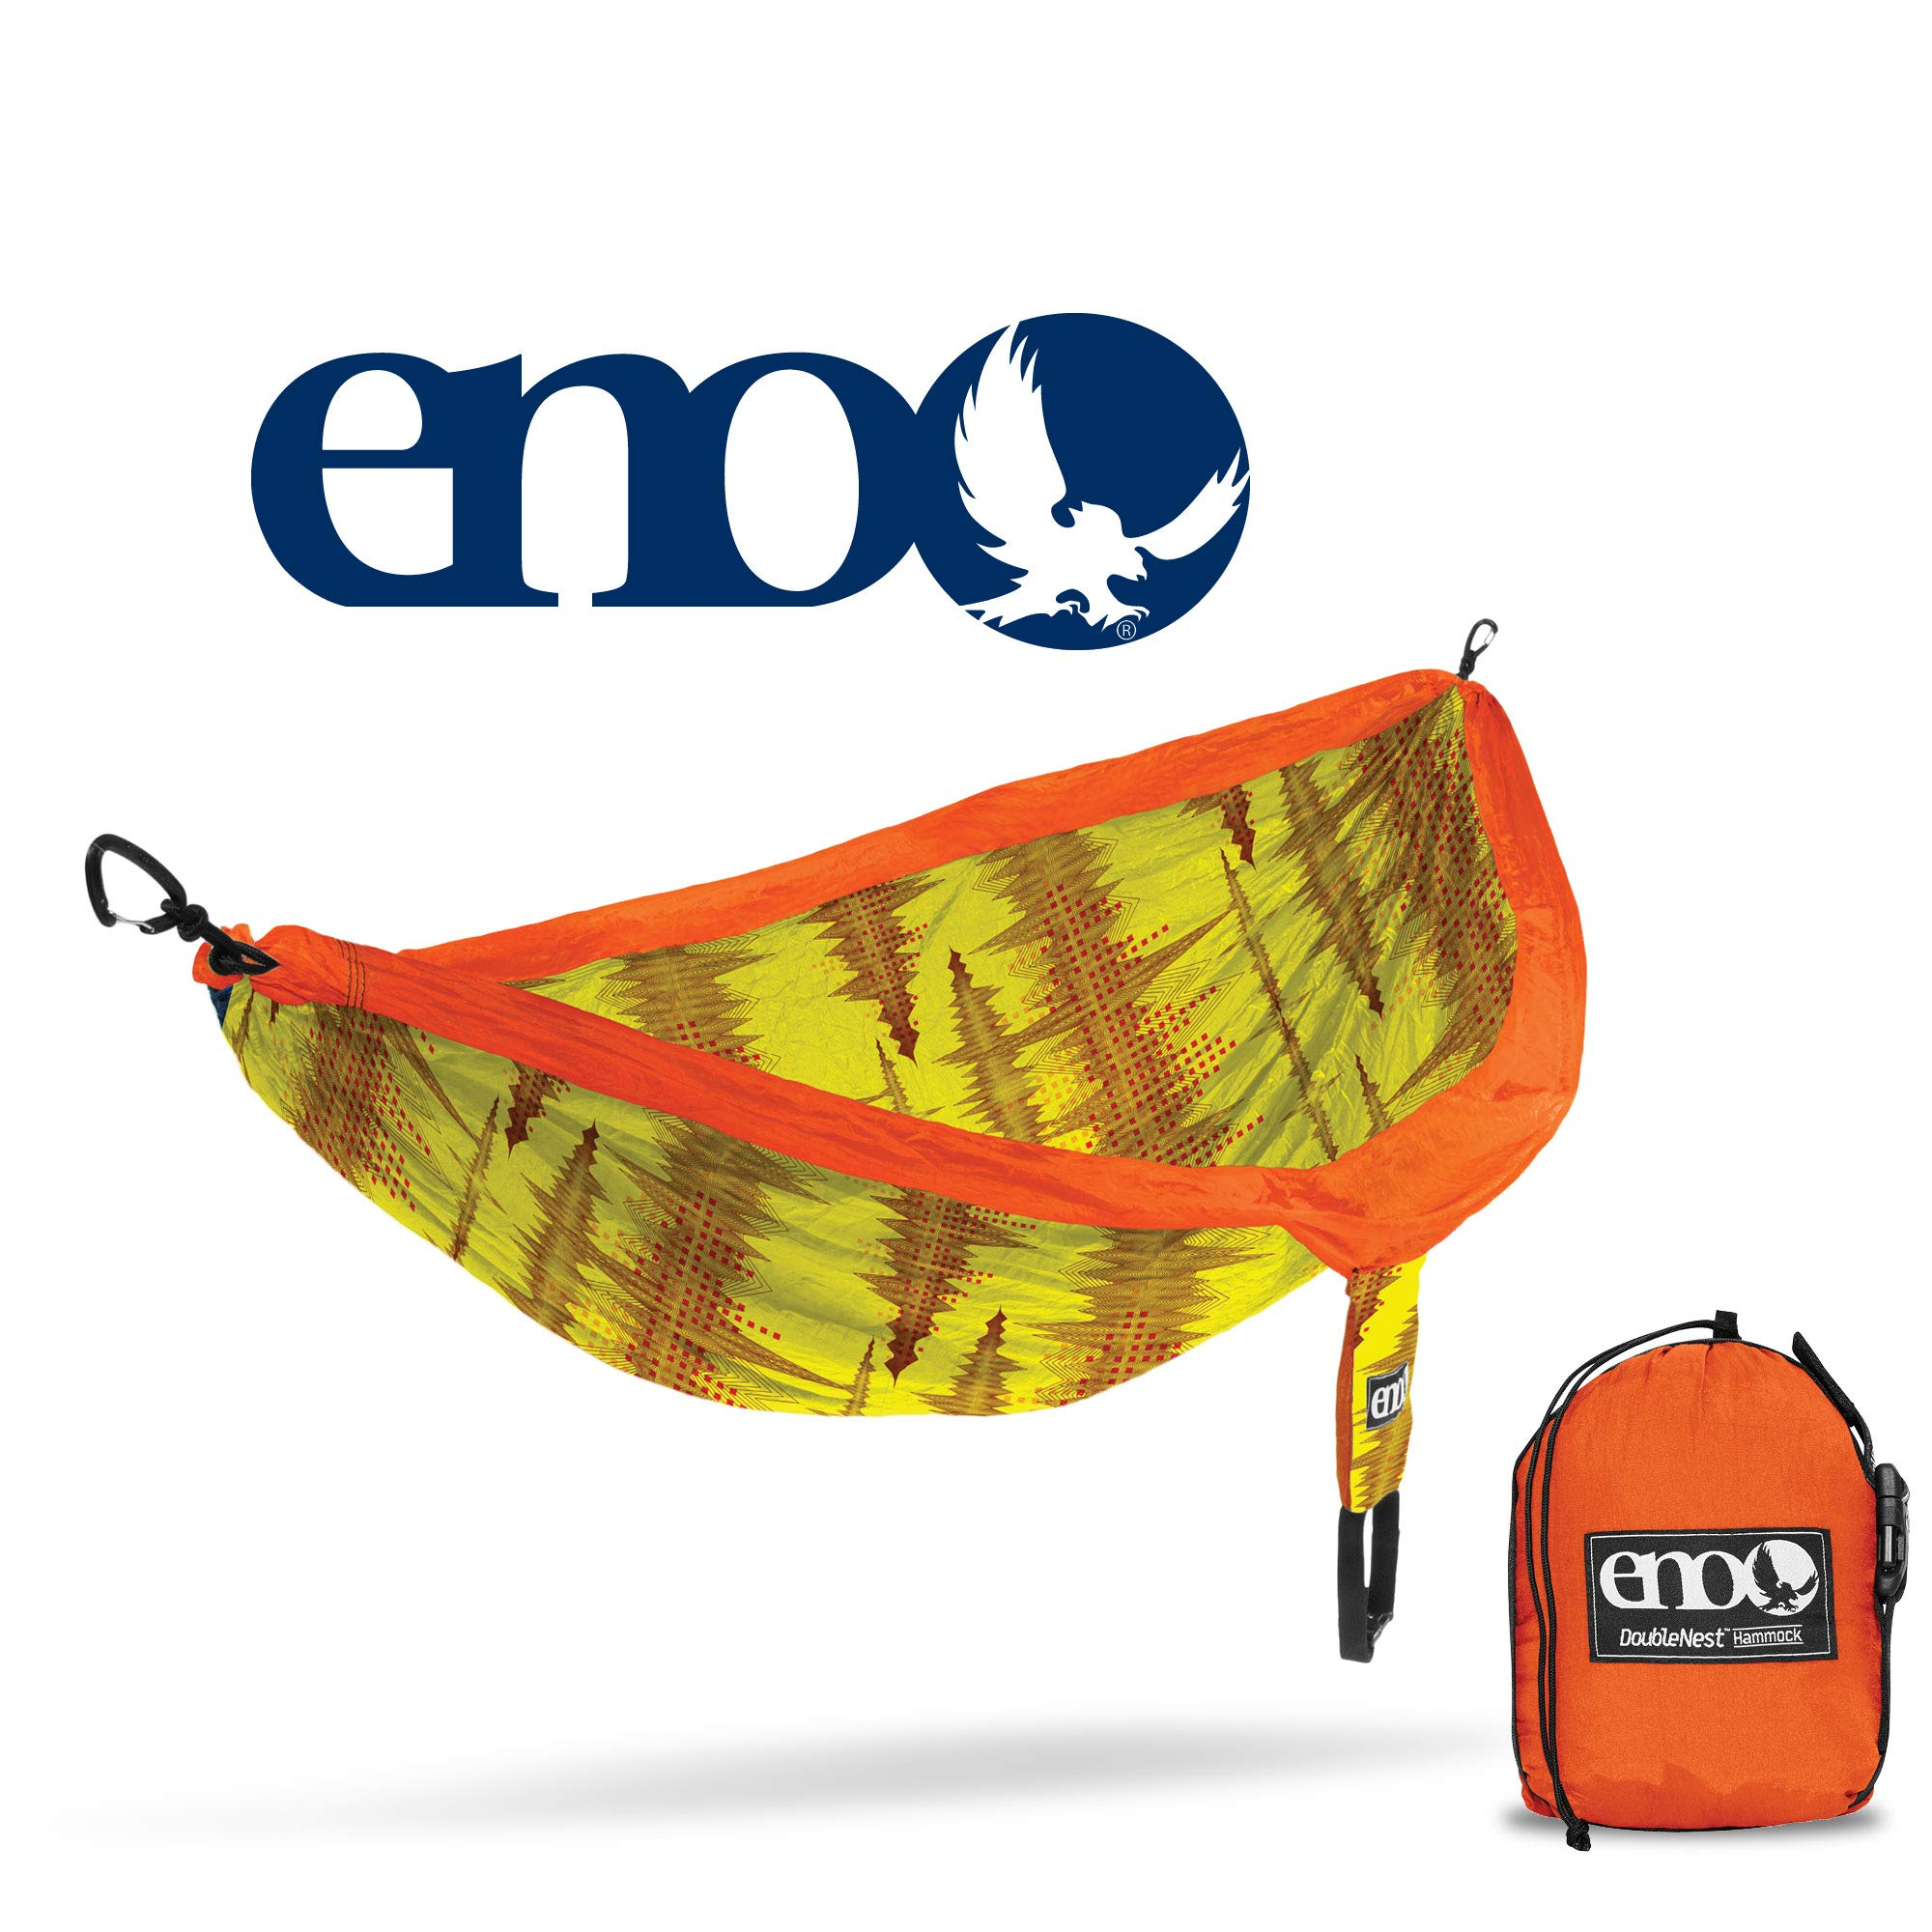 ENO - Eagles Nest Outfitters DoubleNest Print, Portable Hammock for Two, Soundwave/Yellow by ENO